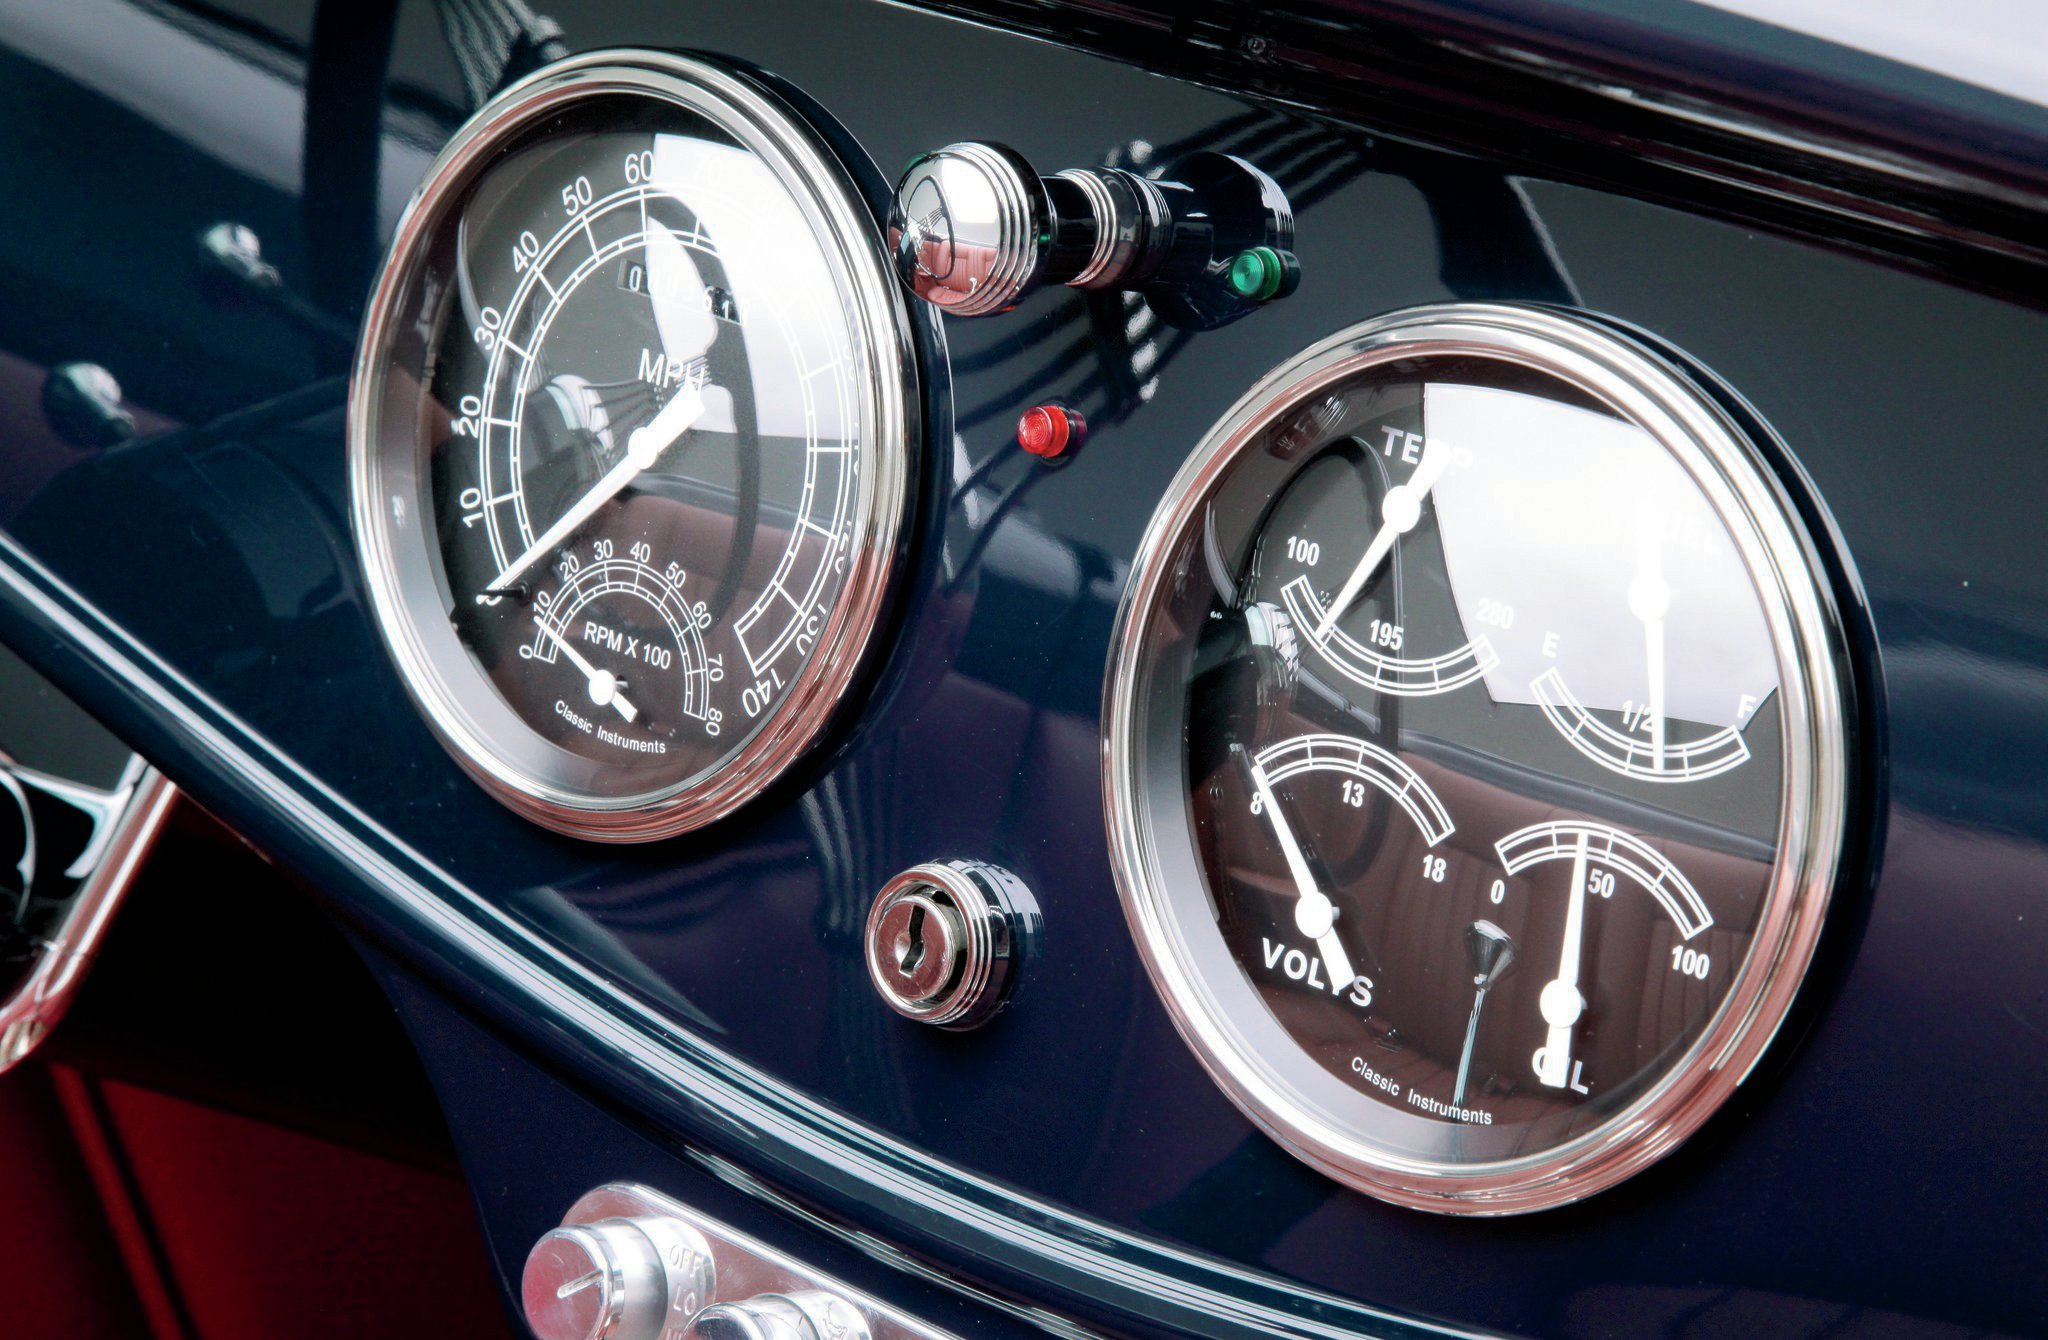 1933-asc-convertible-interior-classic-instruments-gauges-speedo-tach-combo-and-quad-four-in-one-gauge.jpg